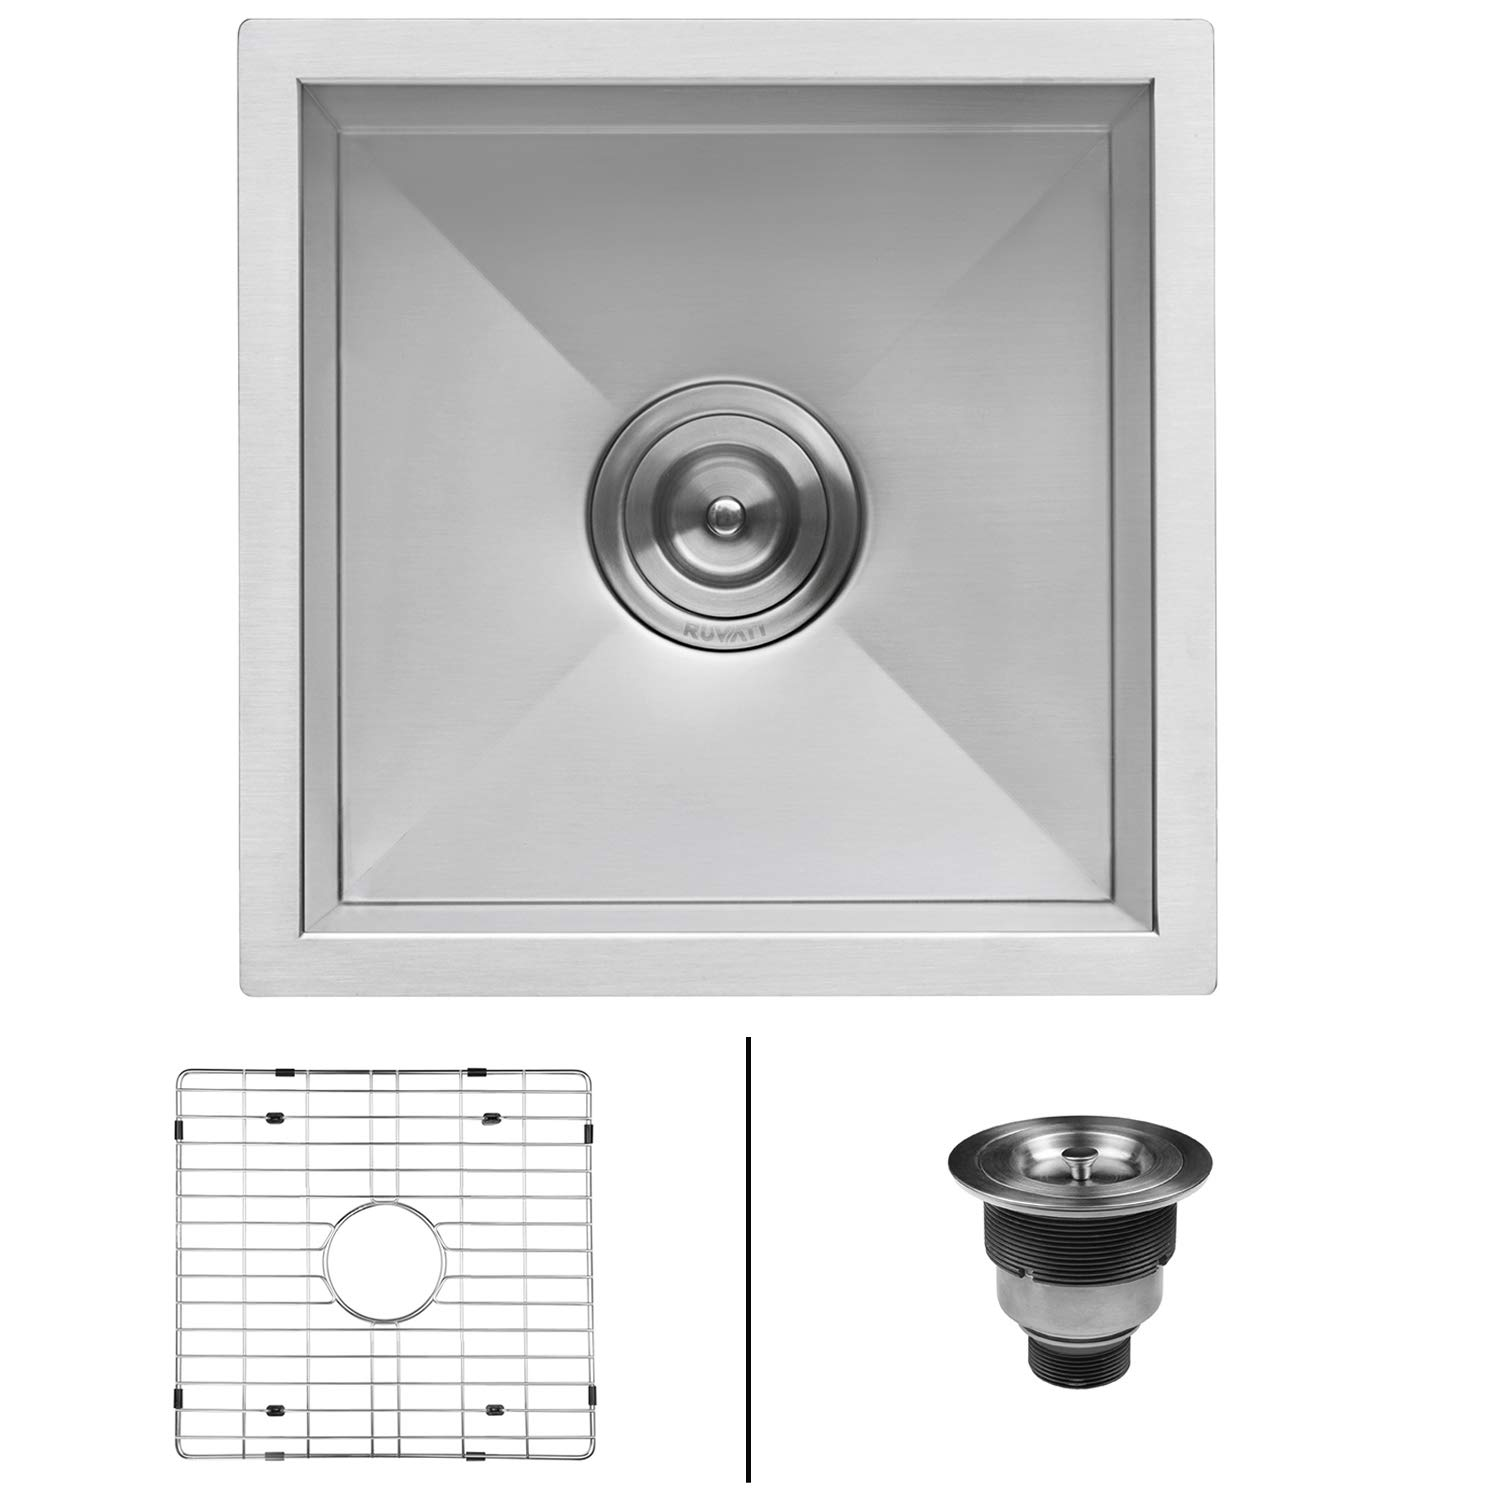 Ruvati 15 x 15 inch Undermount 16 Gauge Zero Raduis Bar Prep Square Kitchen Sink Single Bowl - RVH7115